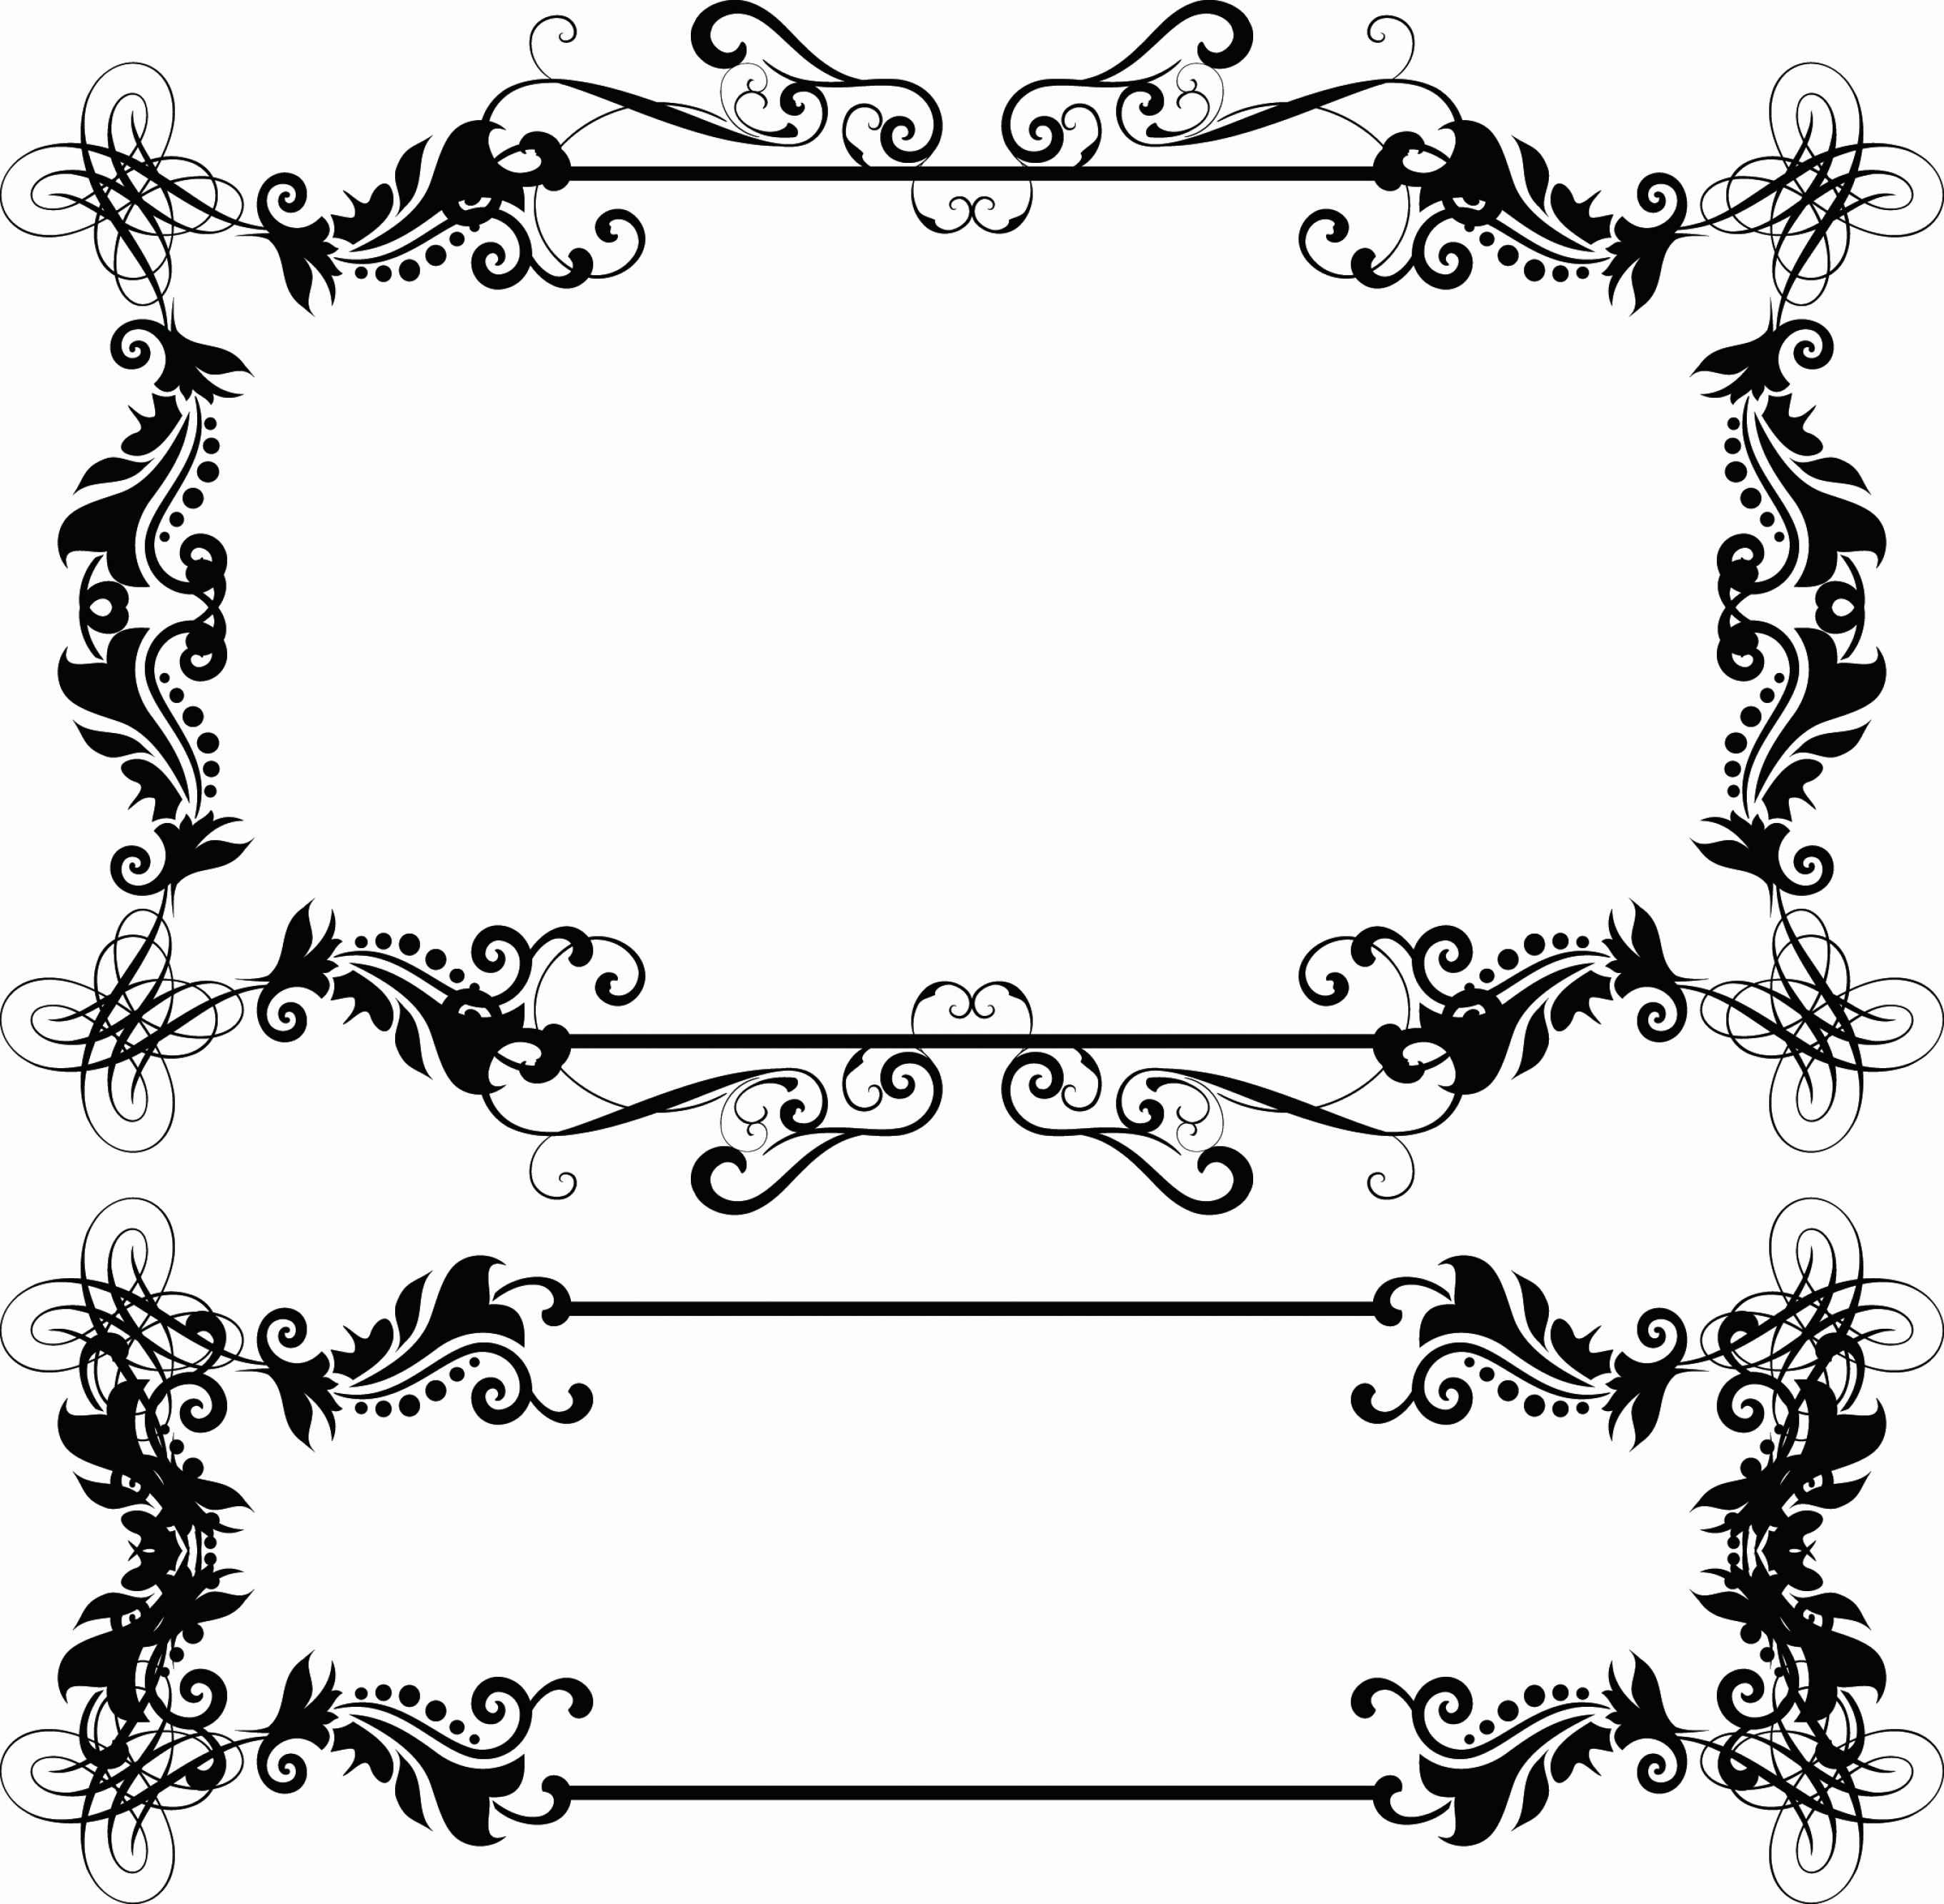 Vector Boarders Clip: Free Vector Borders And Frames Elegant Free Vector Boarders Download Free Clip Art Free Clip Art On